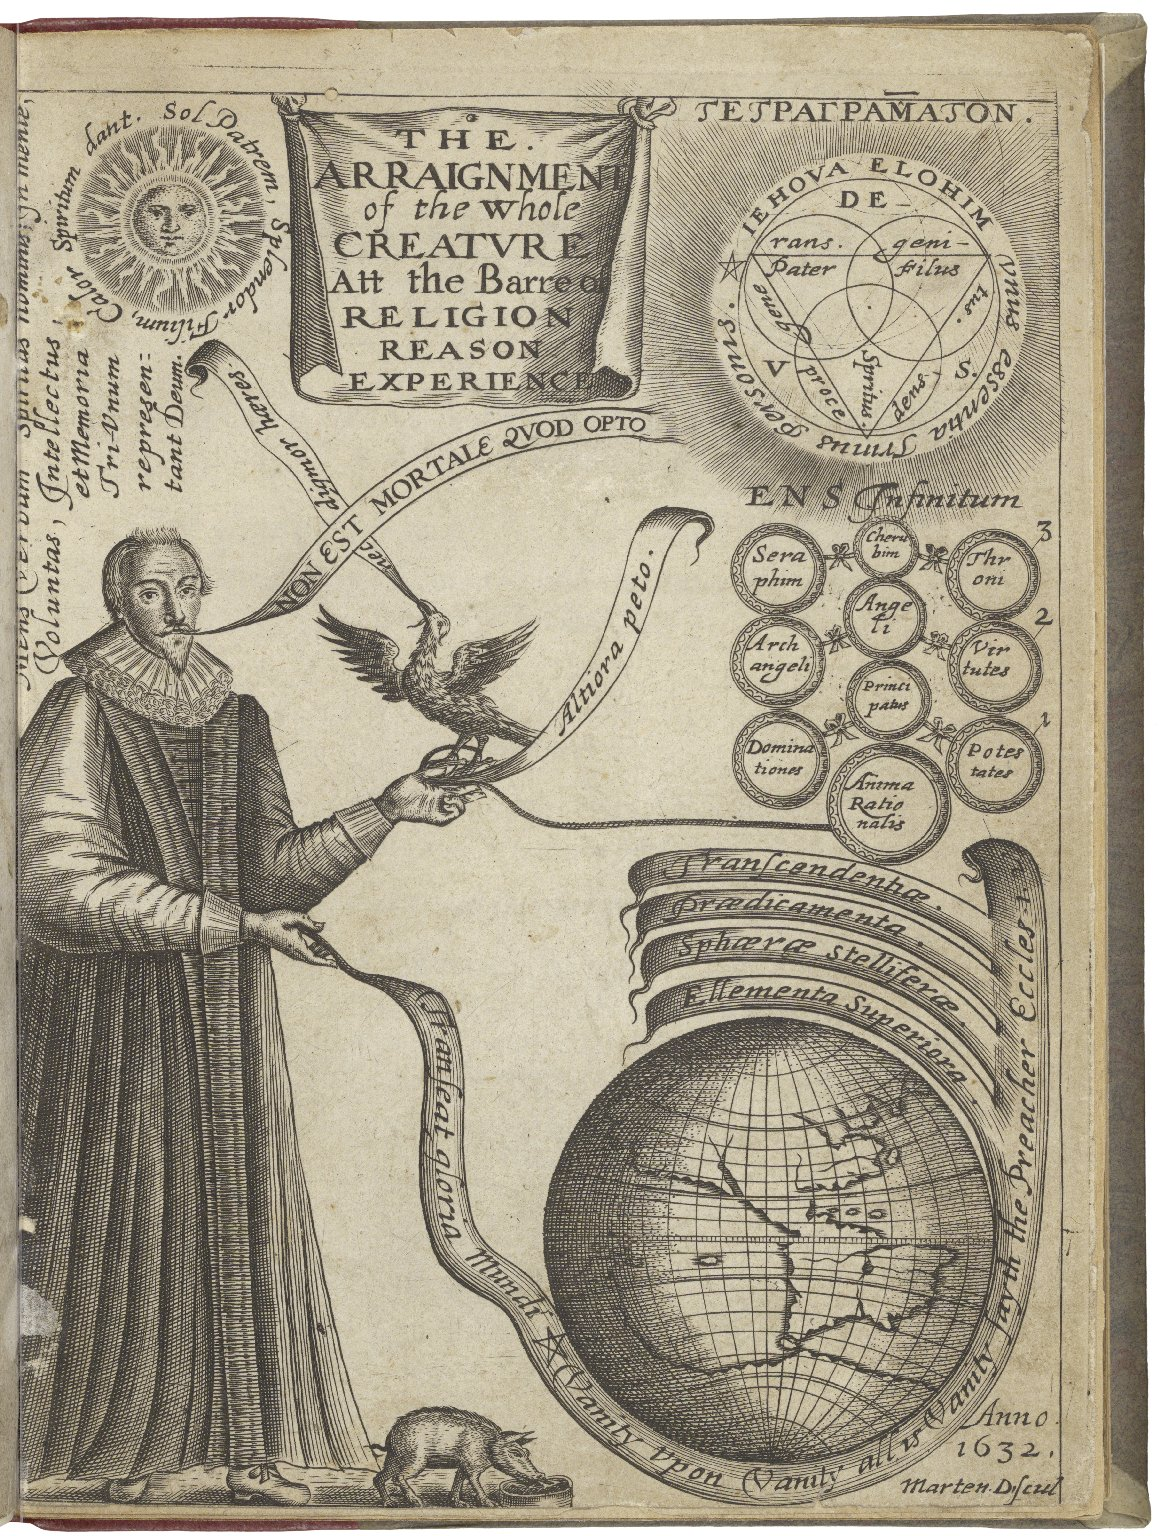 The arraignement of the vvhole creature, at the barre of religion, reason, and experience. Occasioned vpon an inditement preferred by the soule of man against the prodigals vanity and vaine prodigality. Explained, applyed, and tryed in the historie and mi